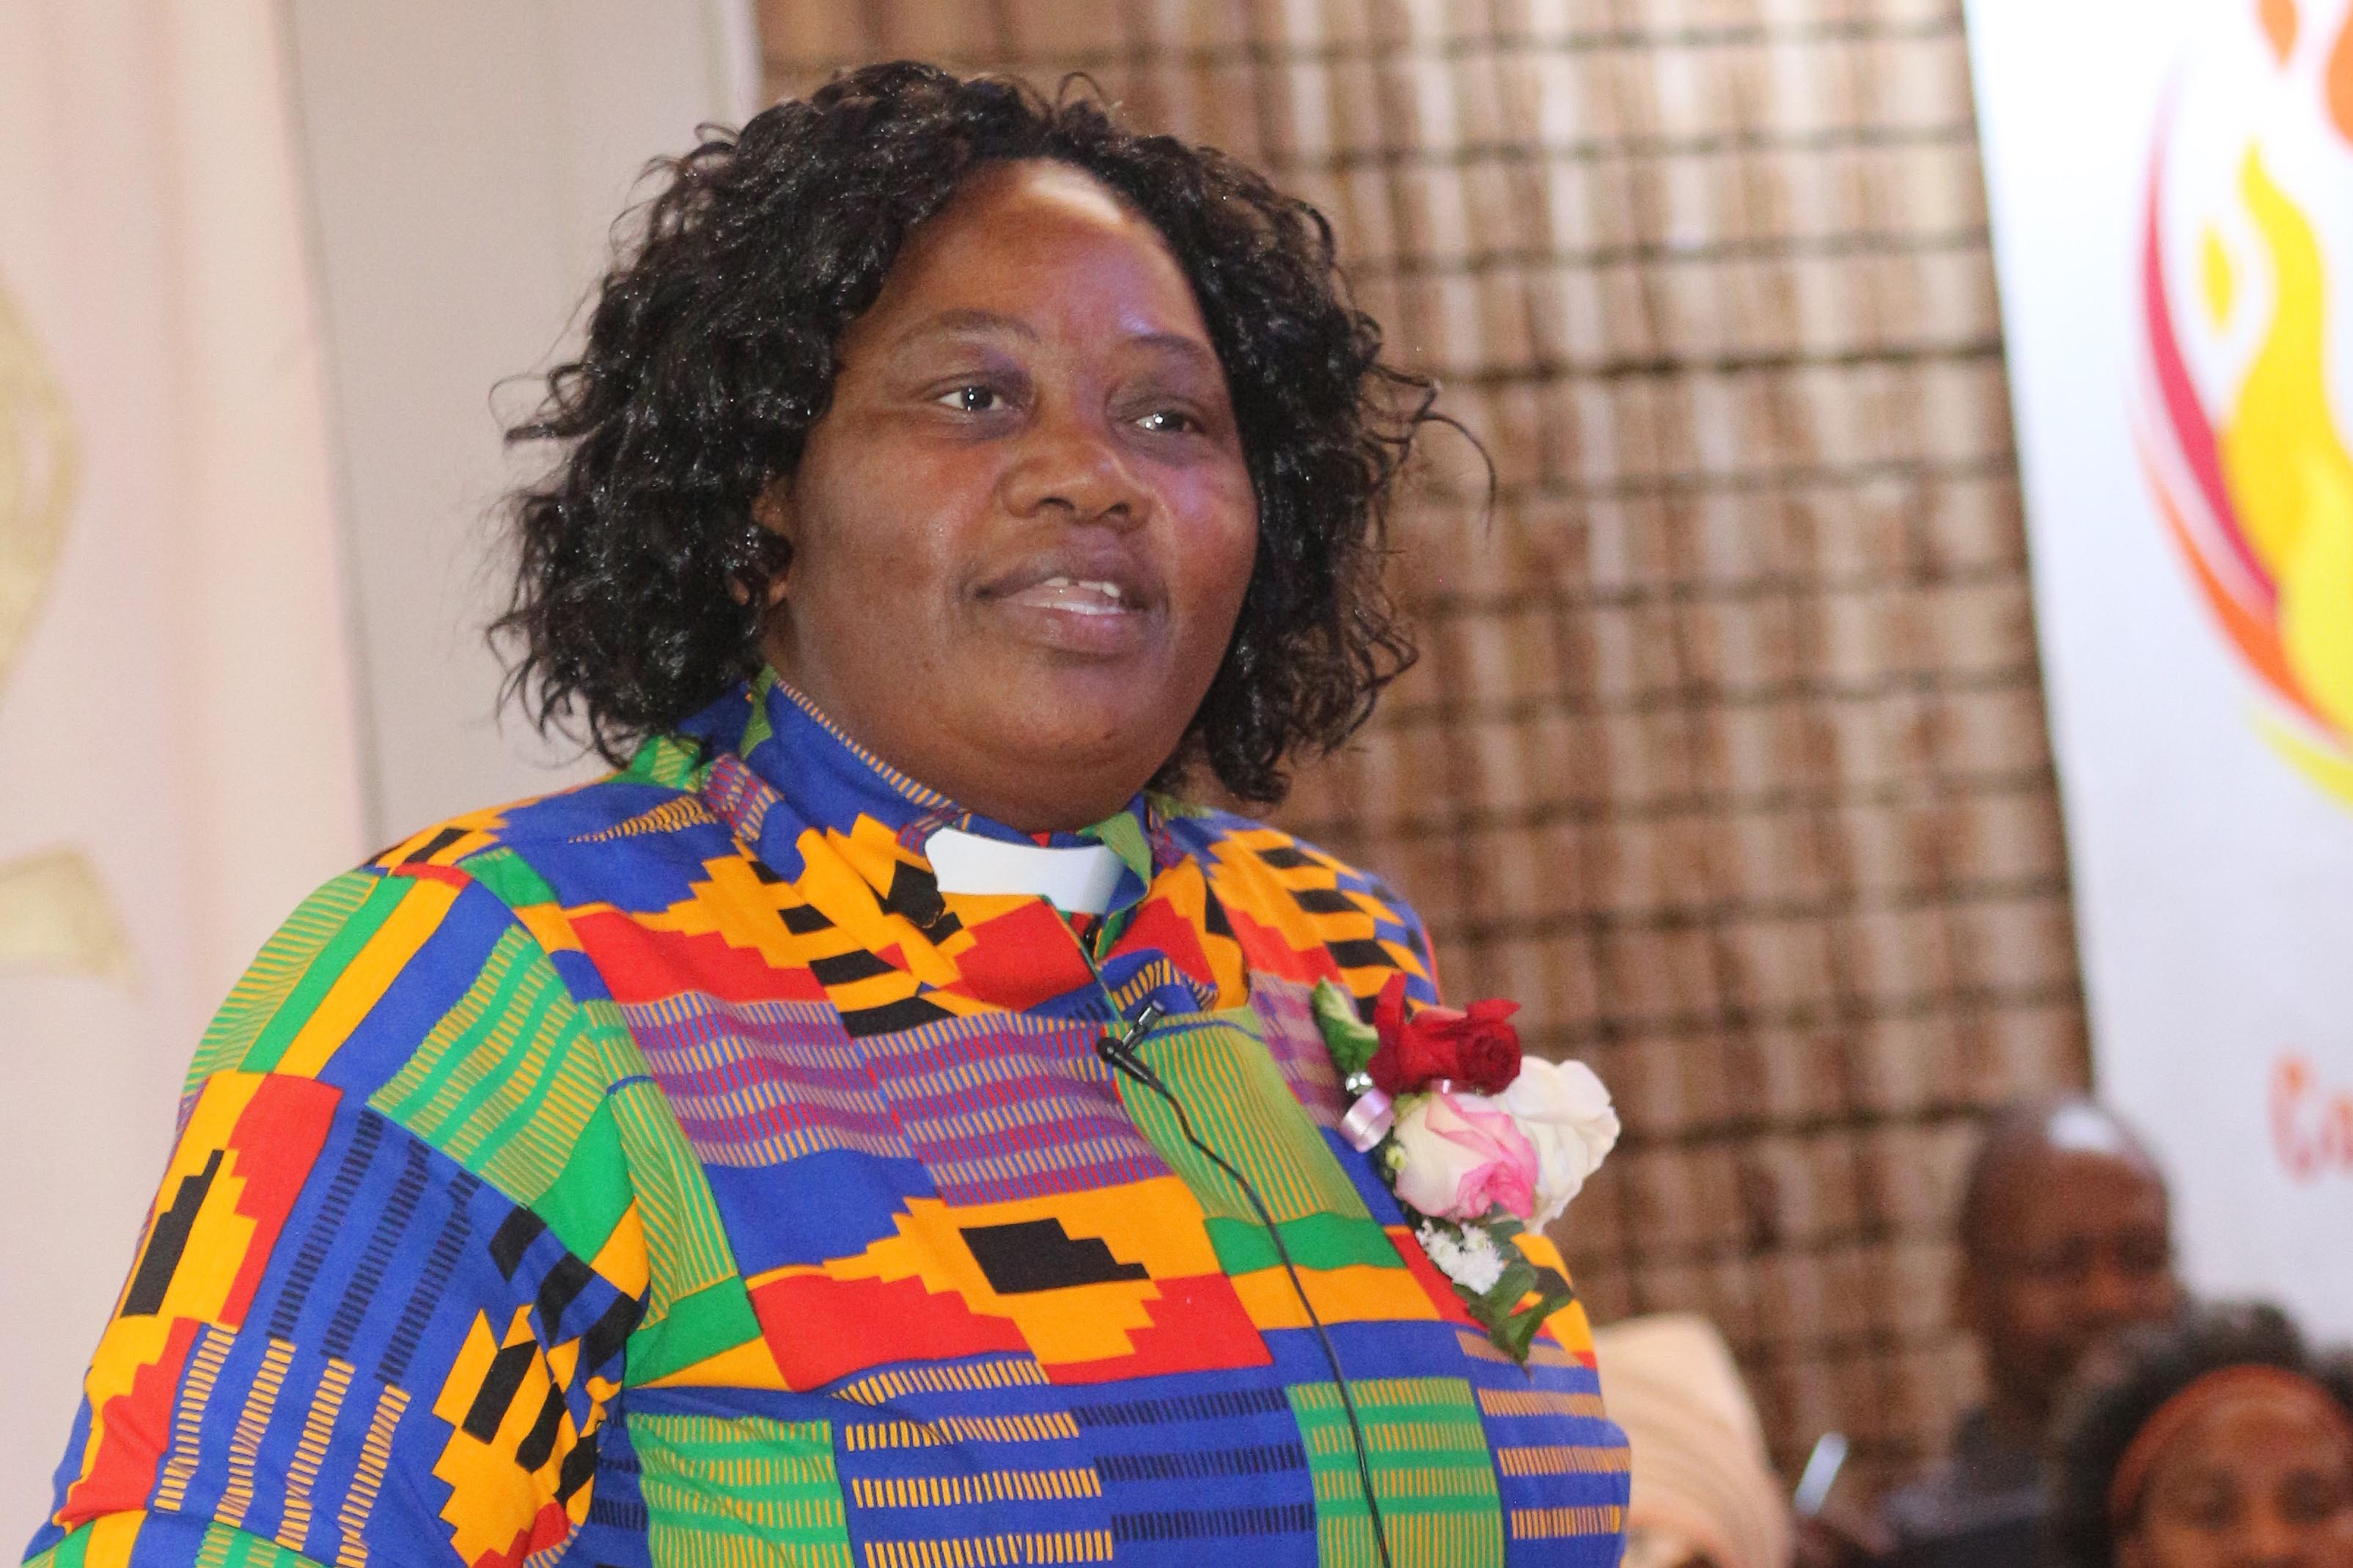 Undated: As the Methodist Church of Southern Africa's new presiding bishop, Purity Malinga is the church's most senior leader. (Photograph courtesy of the Methodist Church of Southern Africa)